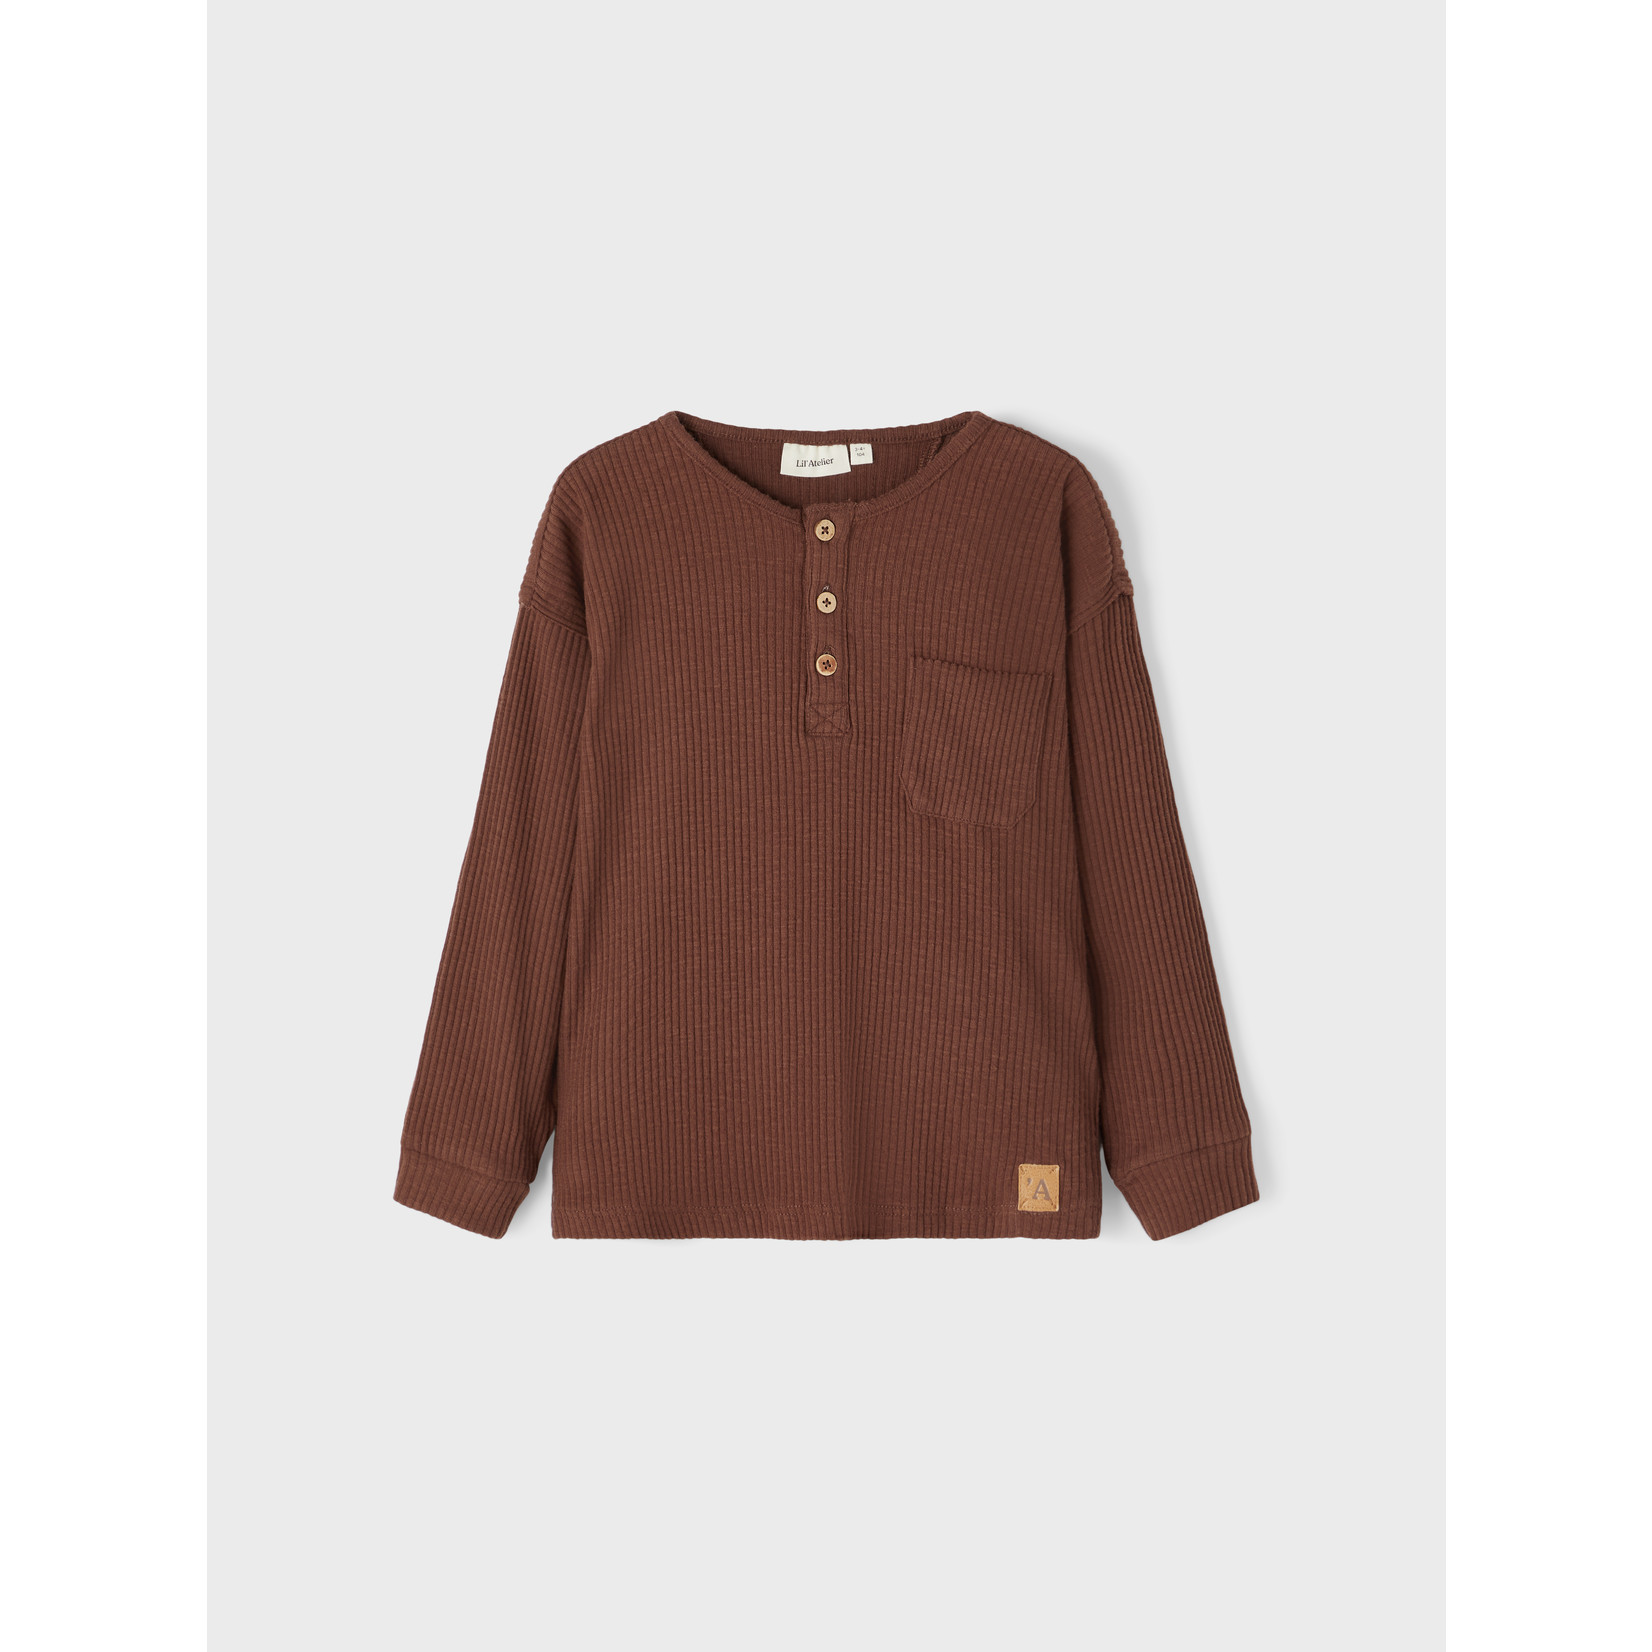 Lil Atelier Lil Atelier - NMMRAJO LS BOXY TOP LIL Chestnut